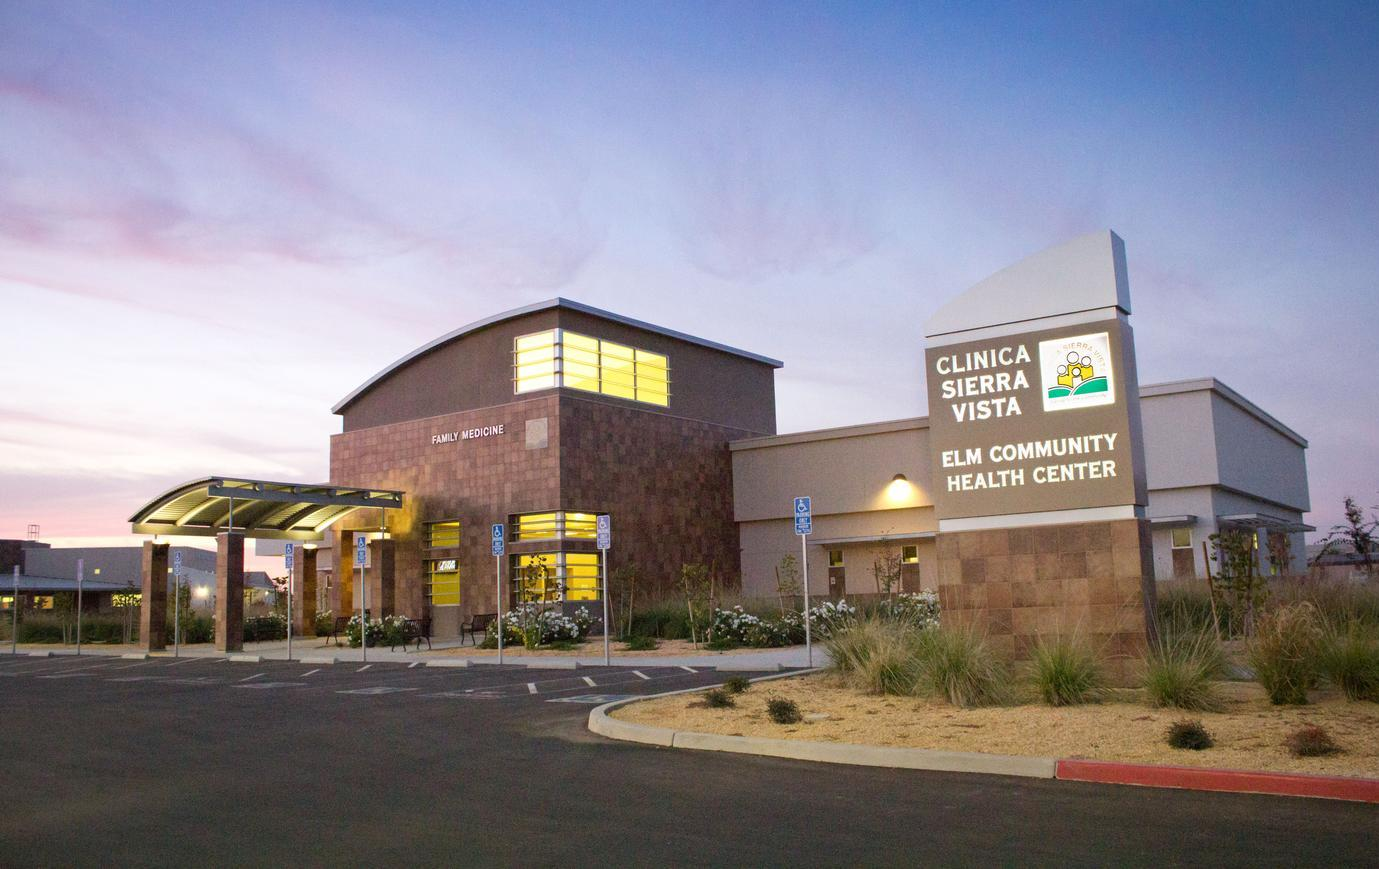 Clinica Sierra Vista Medical Clinics